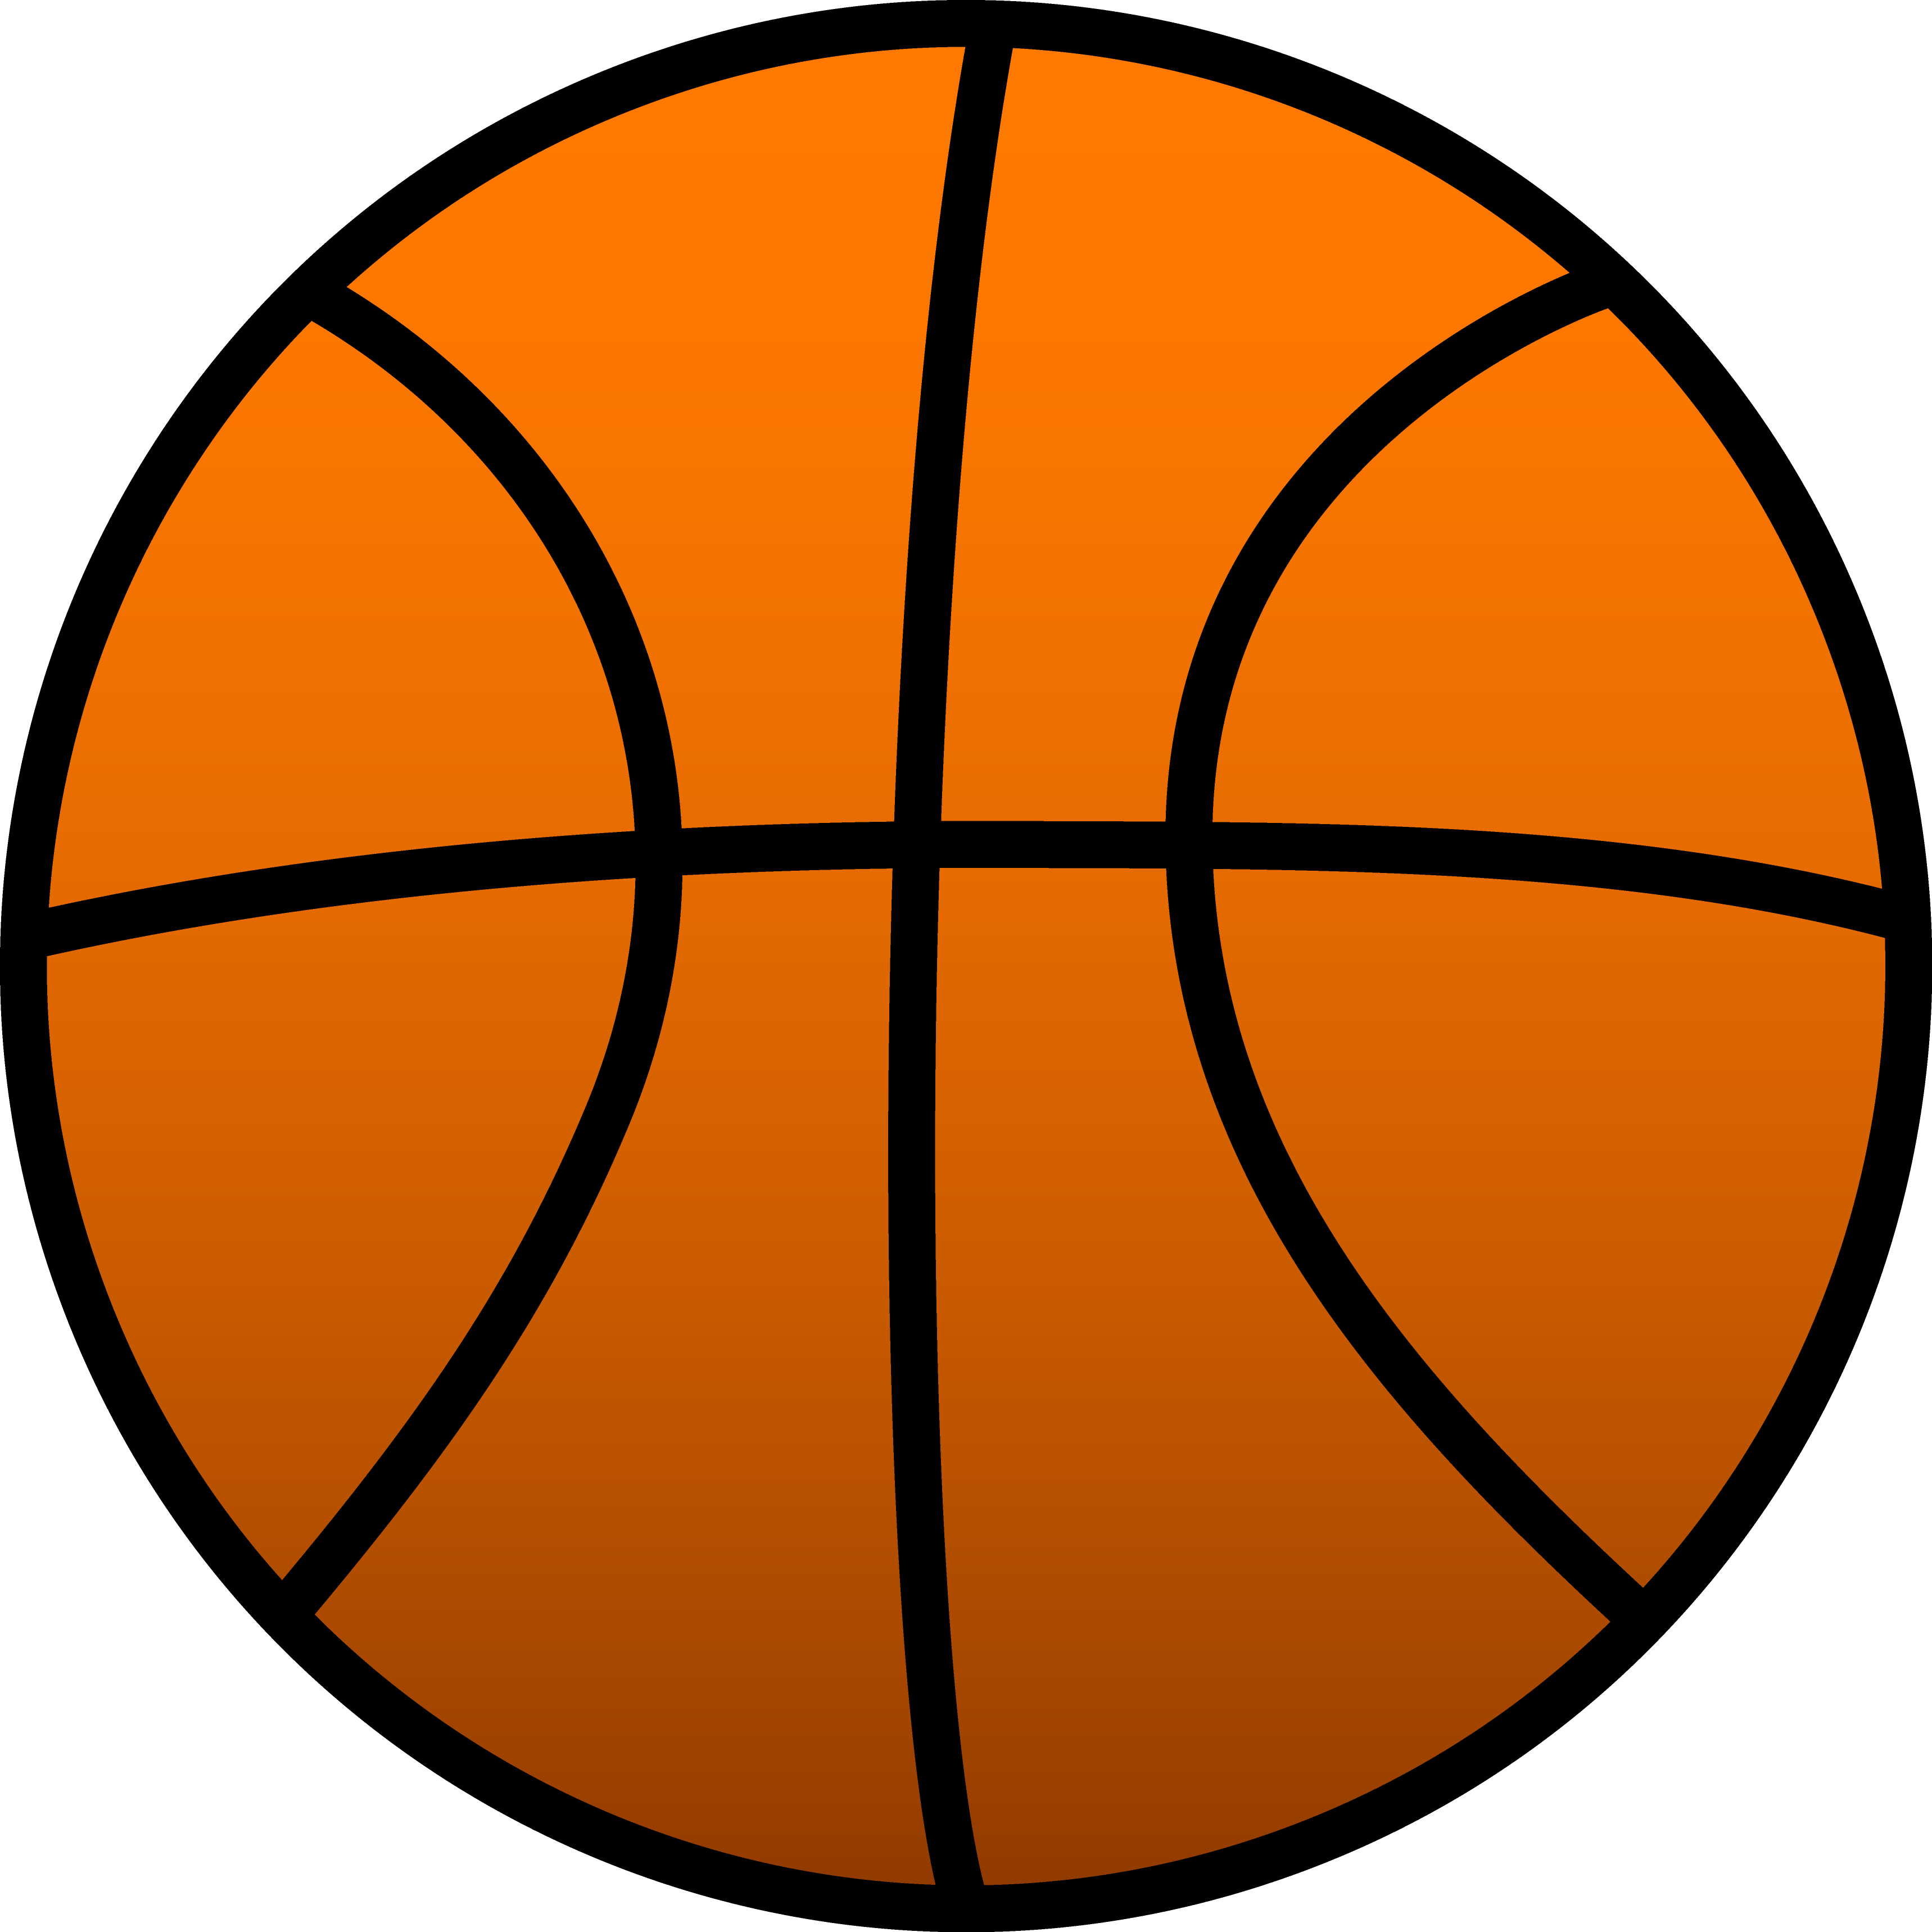 One on one basketball clipart jpg freeuse stock basketball_clipart_1.png (3437×3437) | Sports | Pinterest | Clip art ... jpg freeuse stock